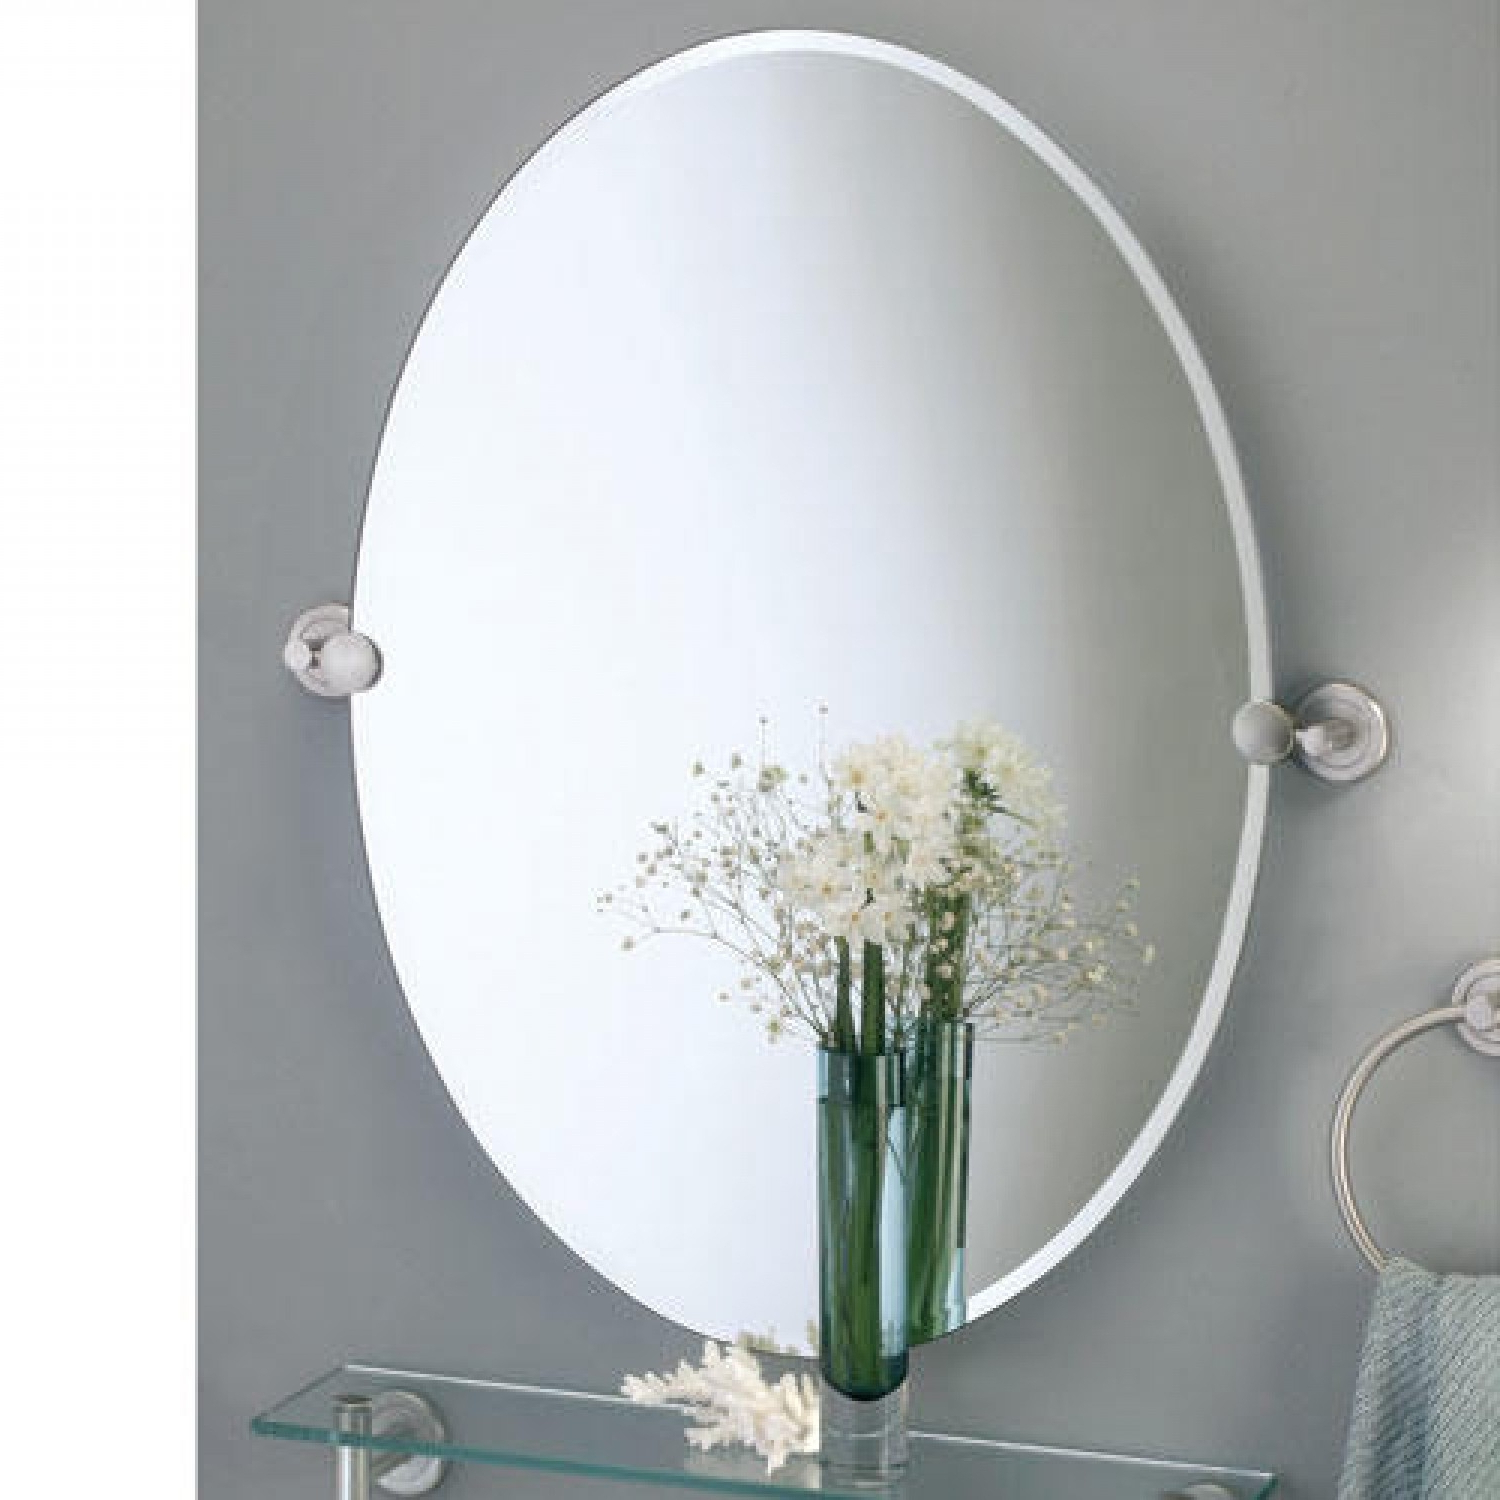 Tilt Wall Mirrors In Best And Newest Oval Tilt Mirror Bathroom • Bathroom Mirrors And Wall Mirrors (View 9 of 20)